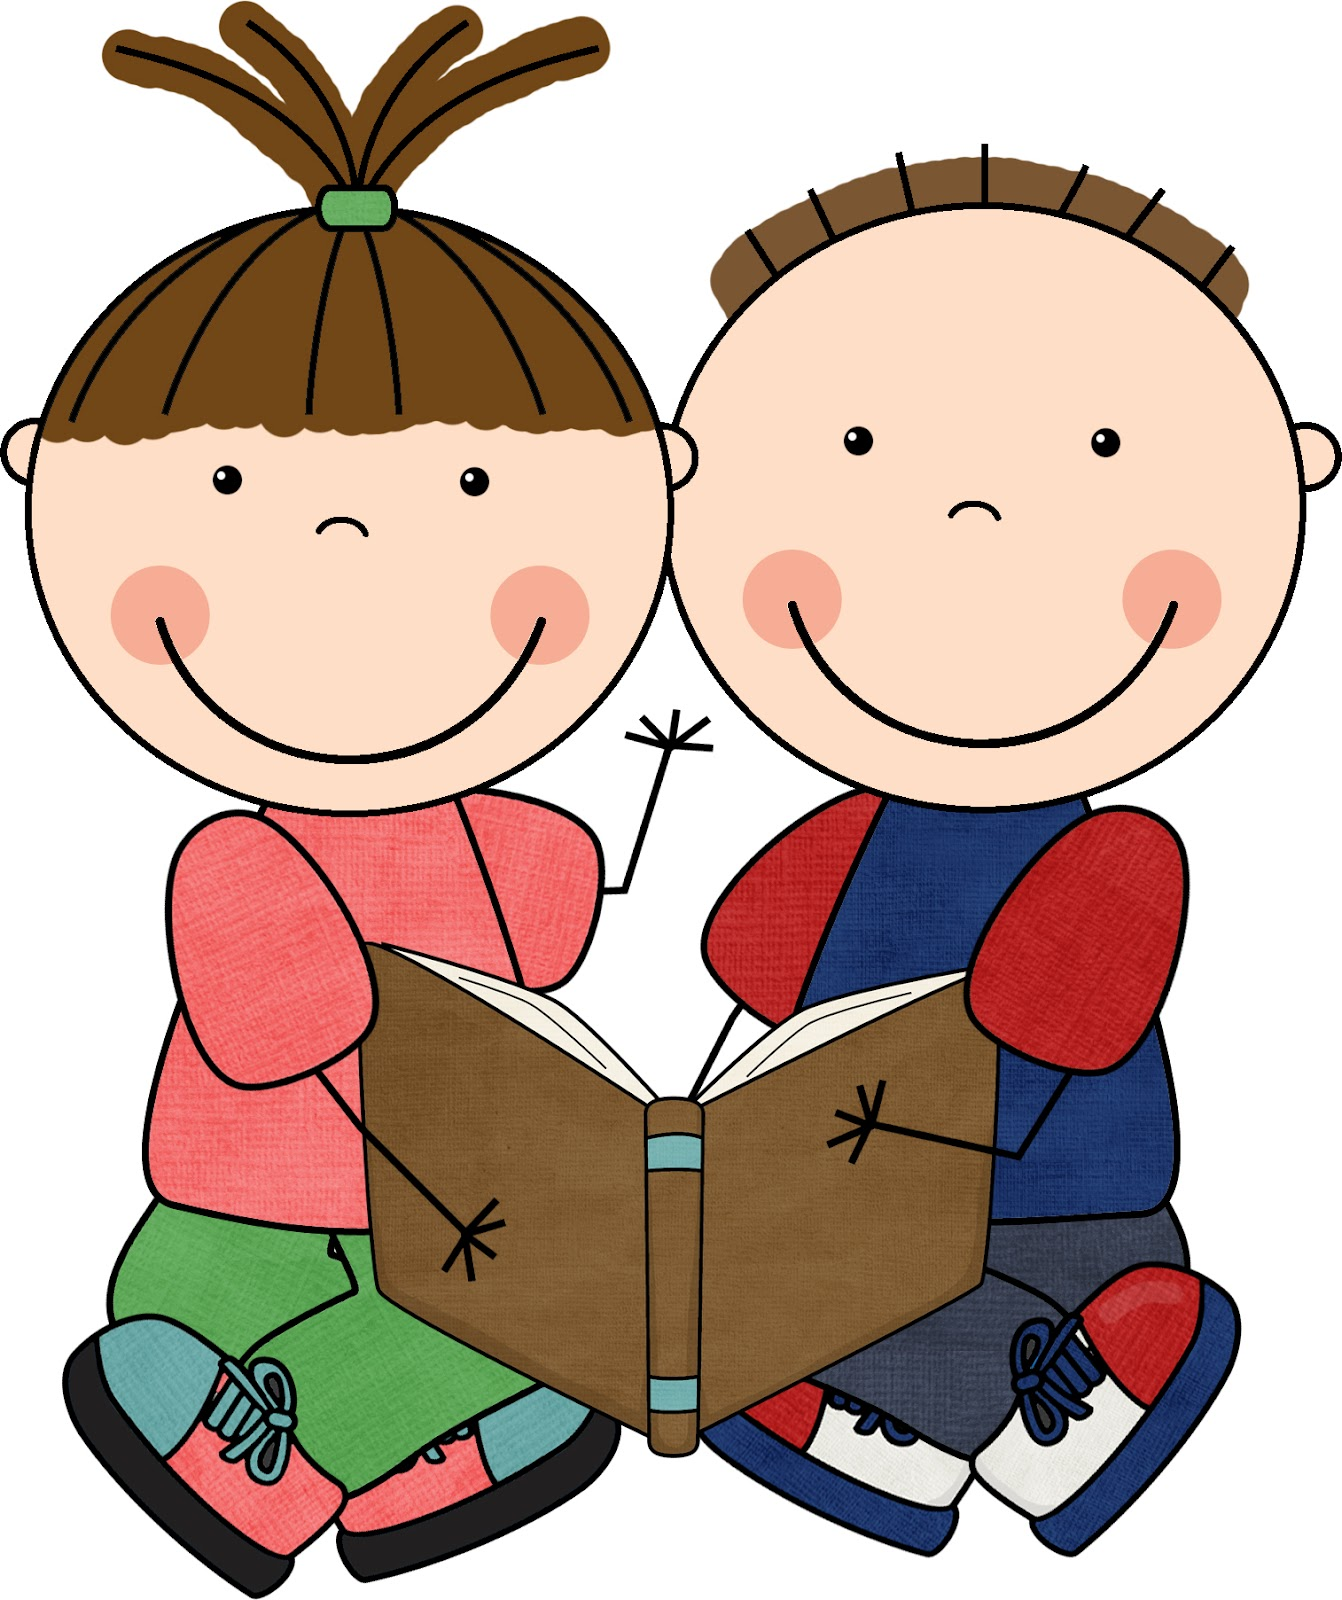 svg free Free pictures of children. Kids being nice to each other clipart